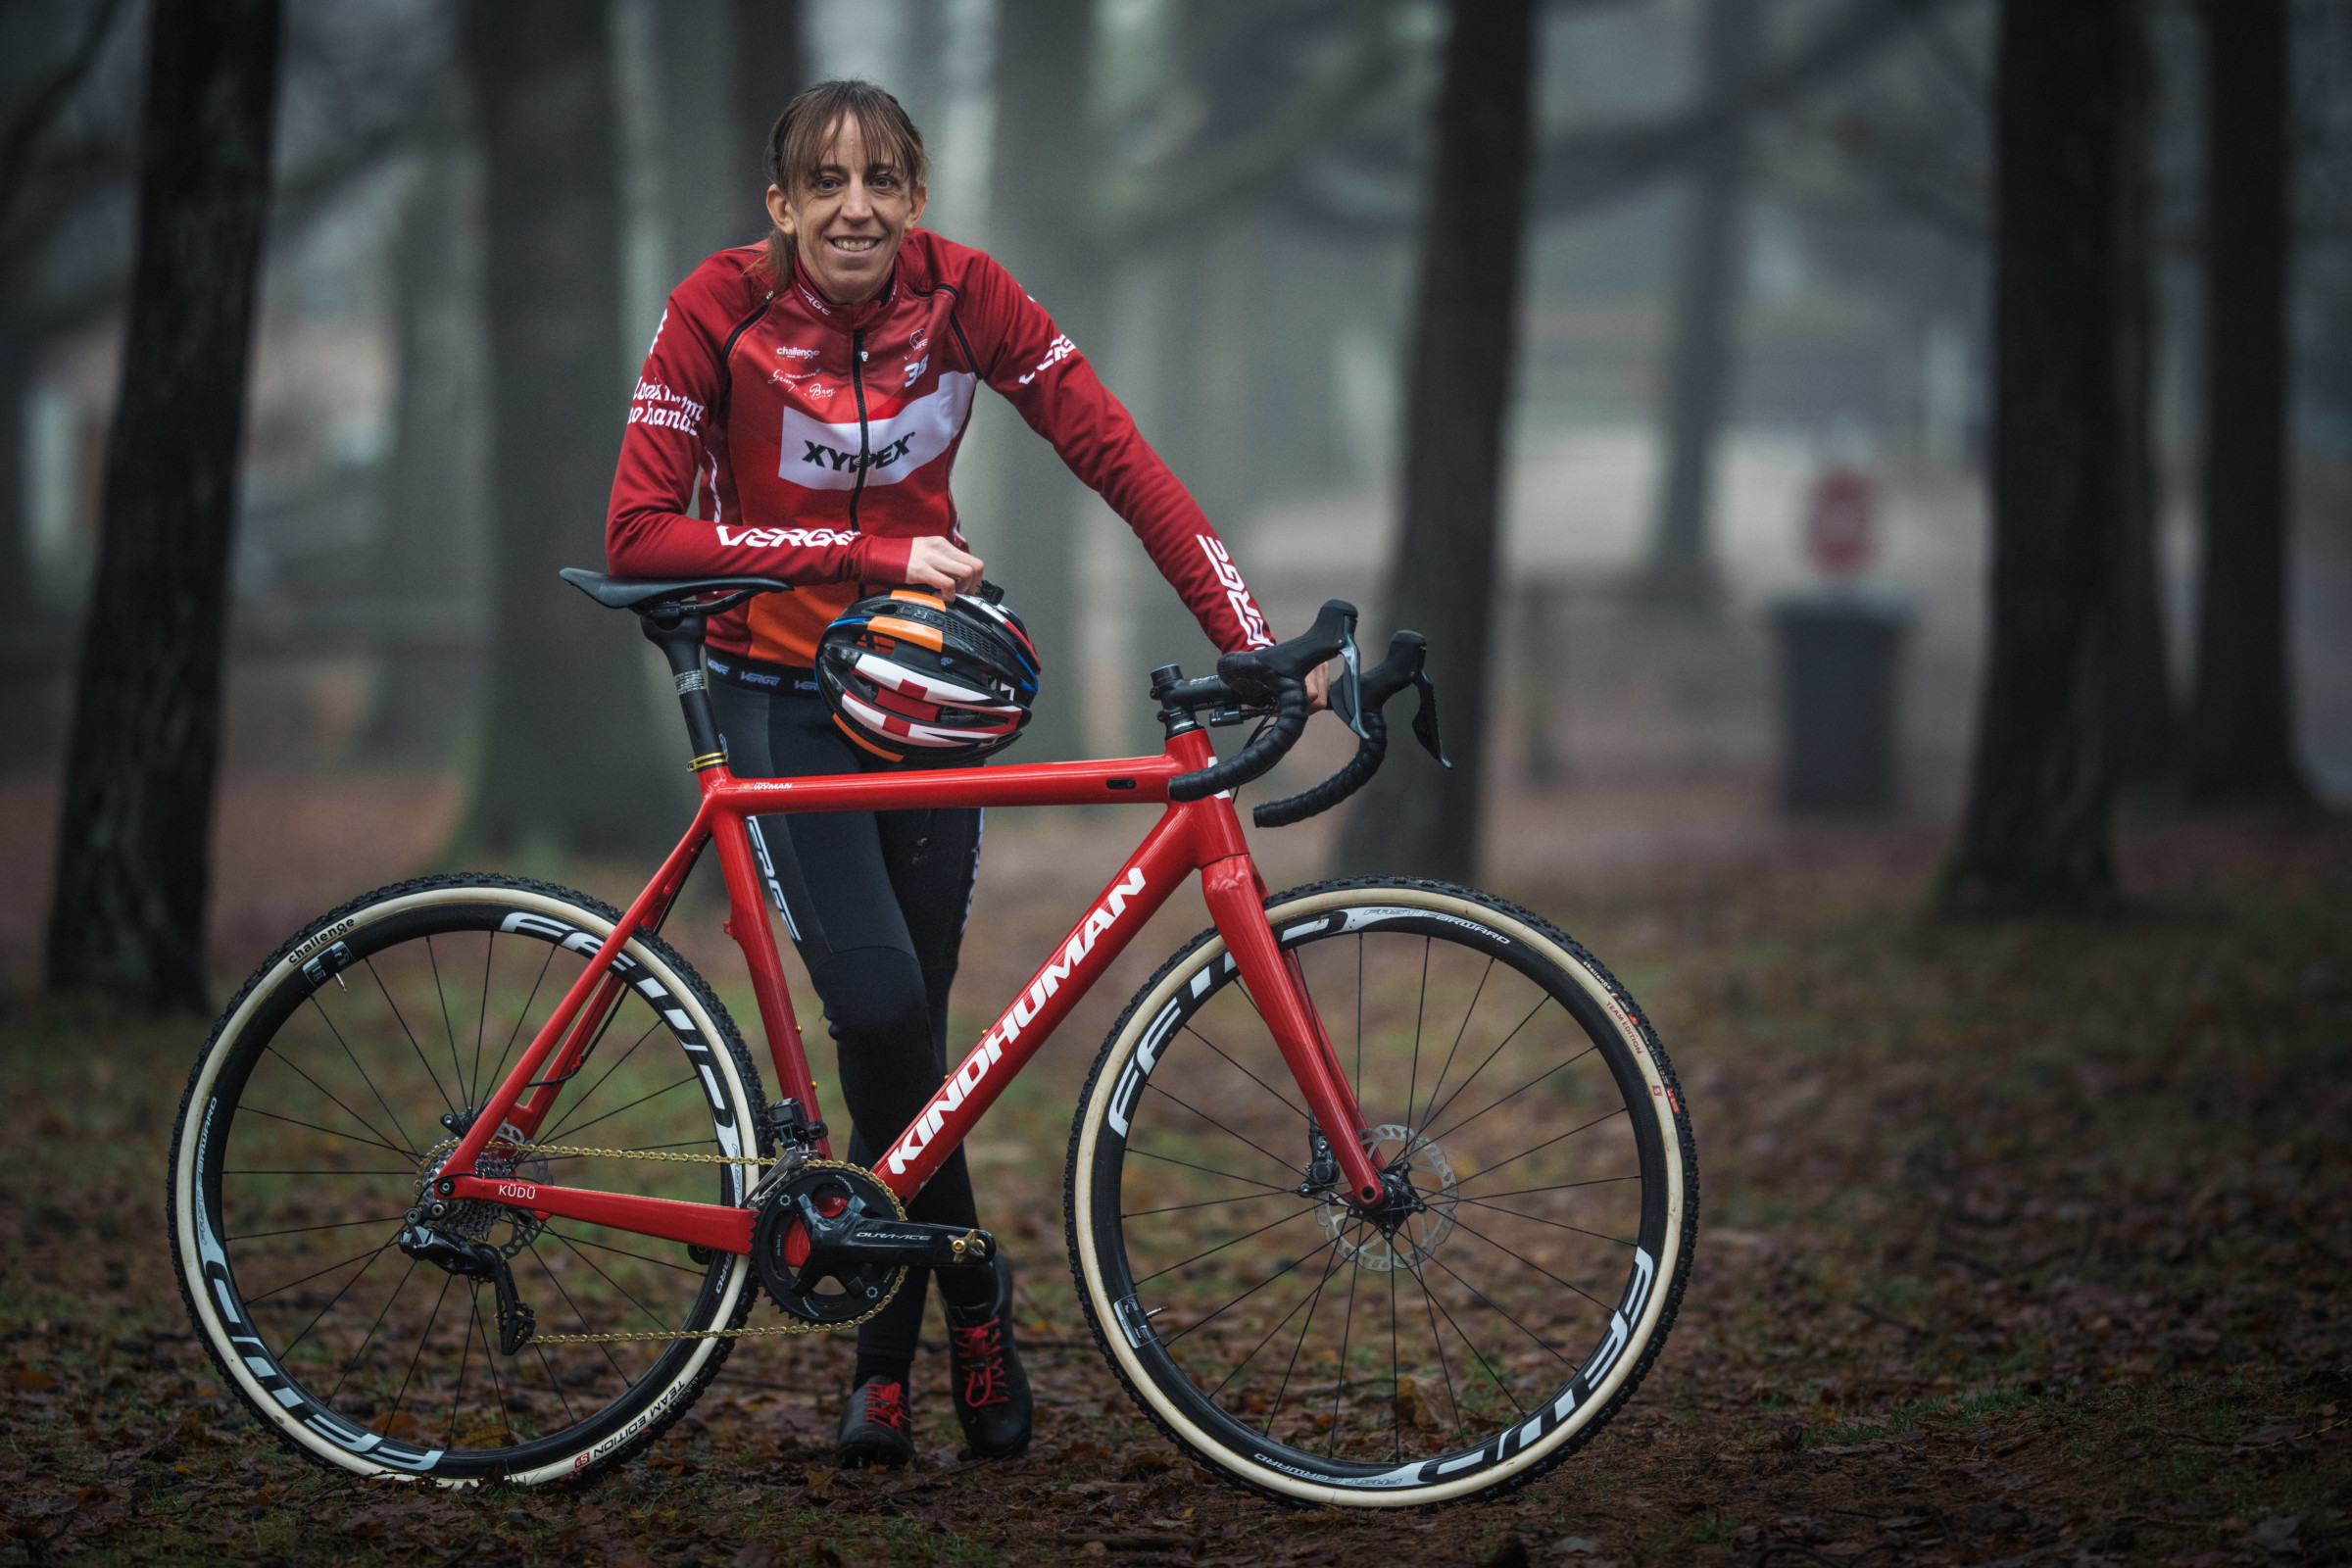 """Helen Wyman Announces """"Xypex – Verge Sport"""" Program and KindHuman Bike for  2018 ab82e6be1"""